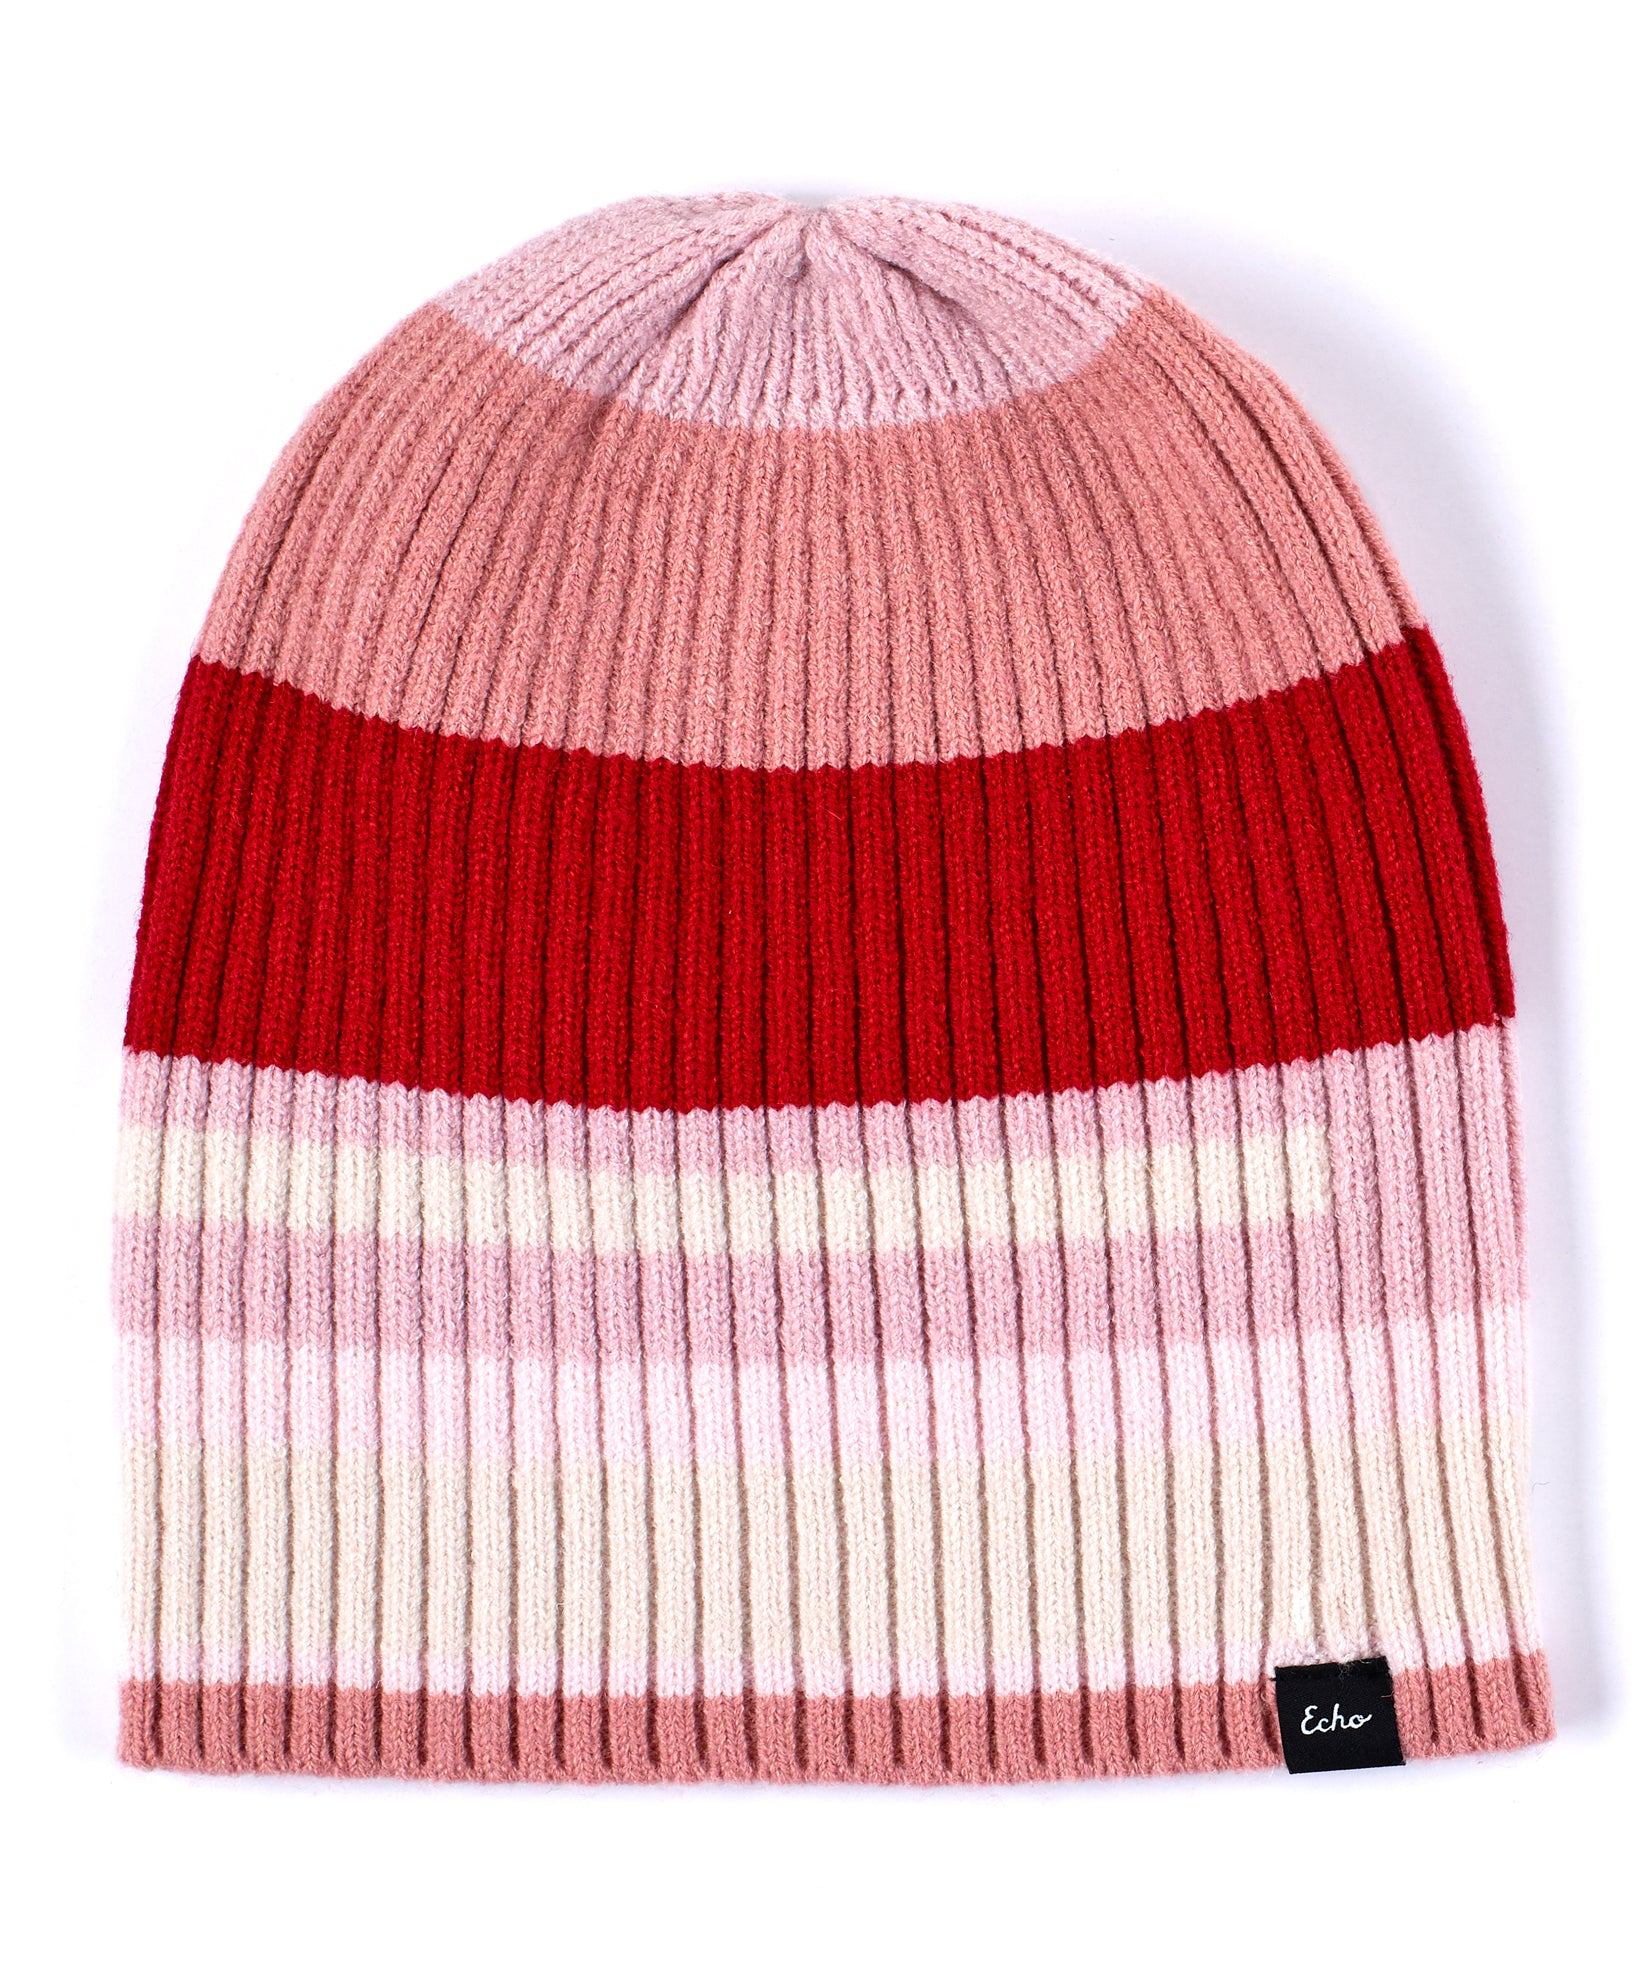 Ruby Red - Active Stretch Color Block Beanie